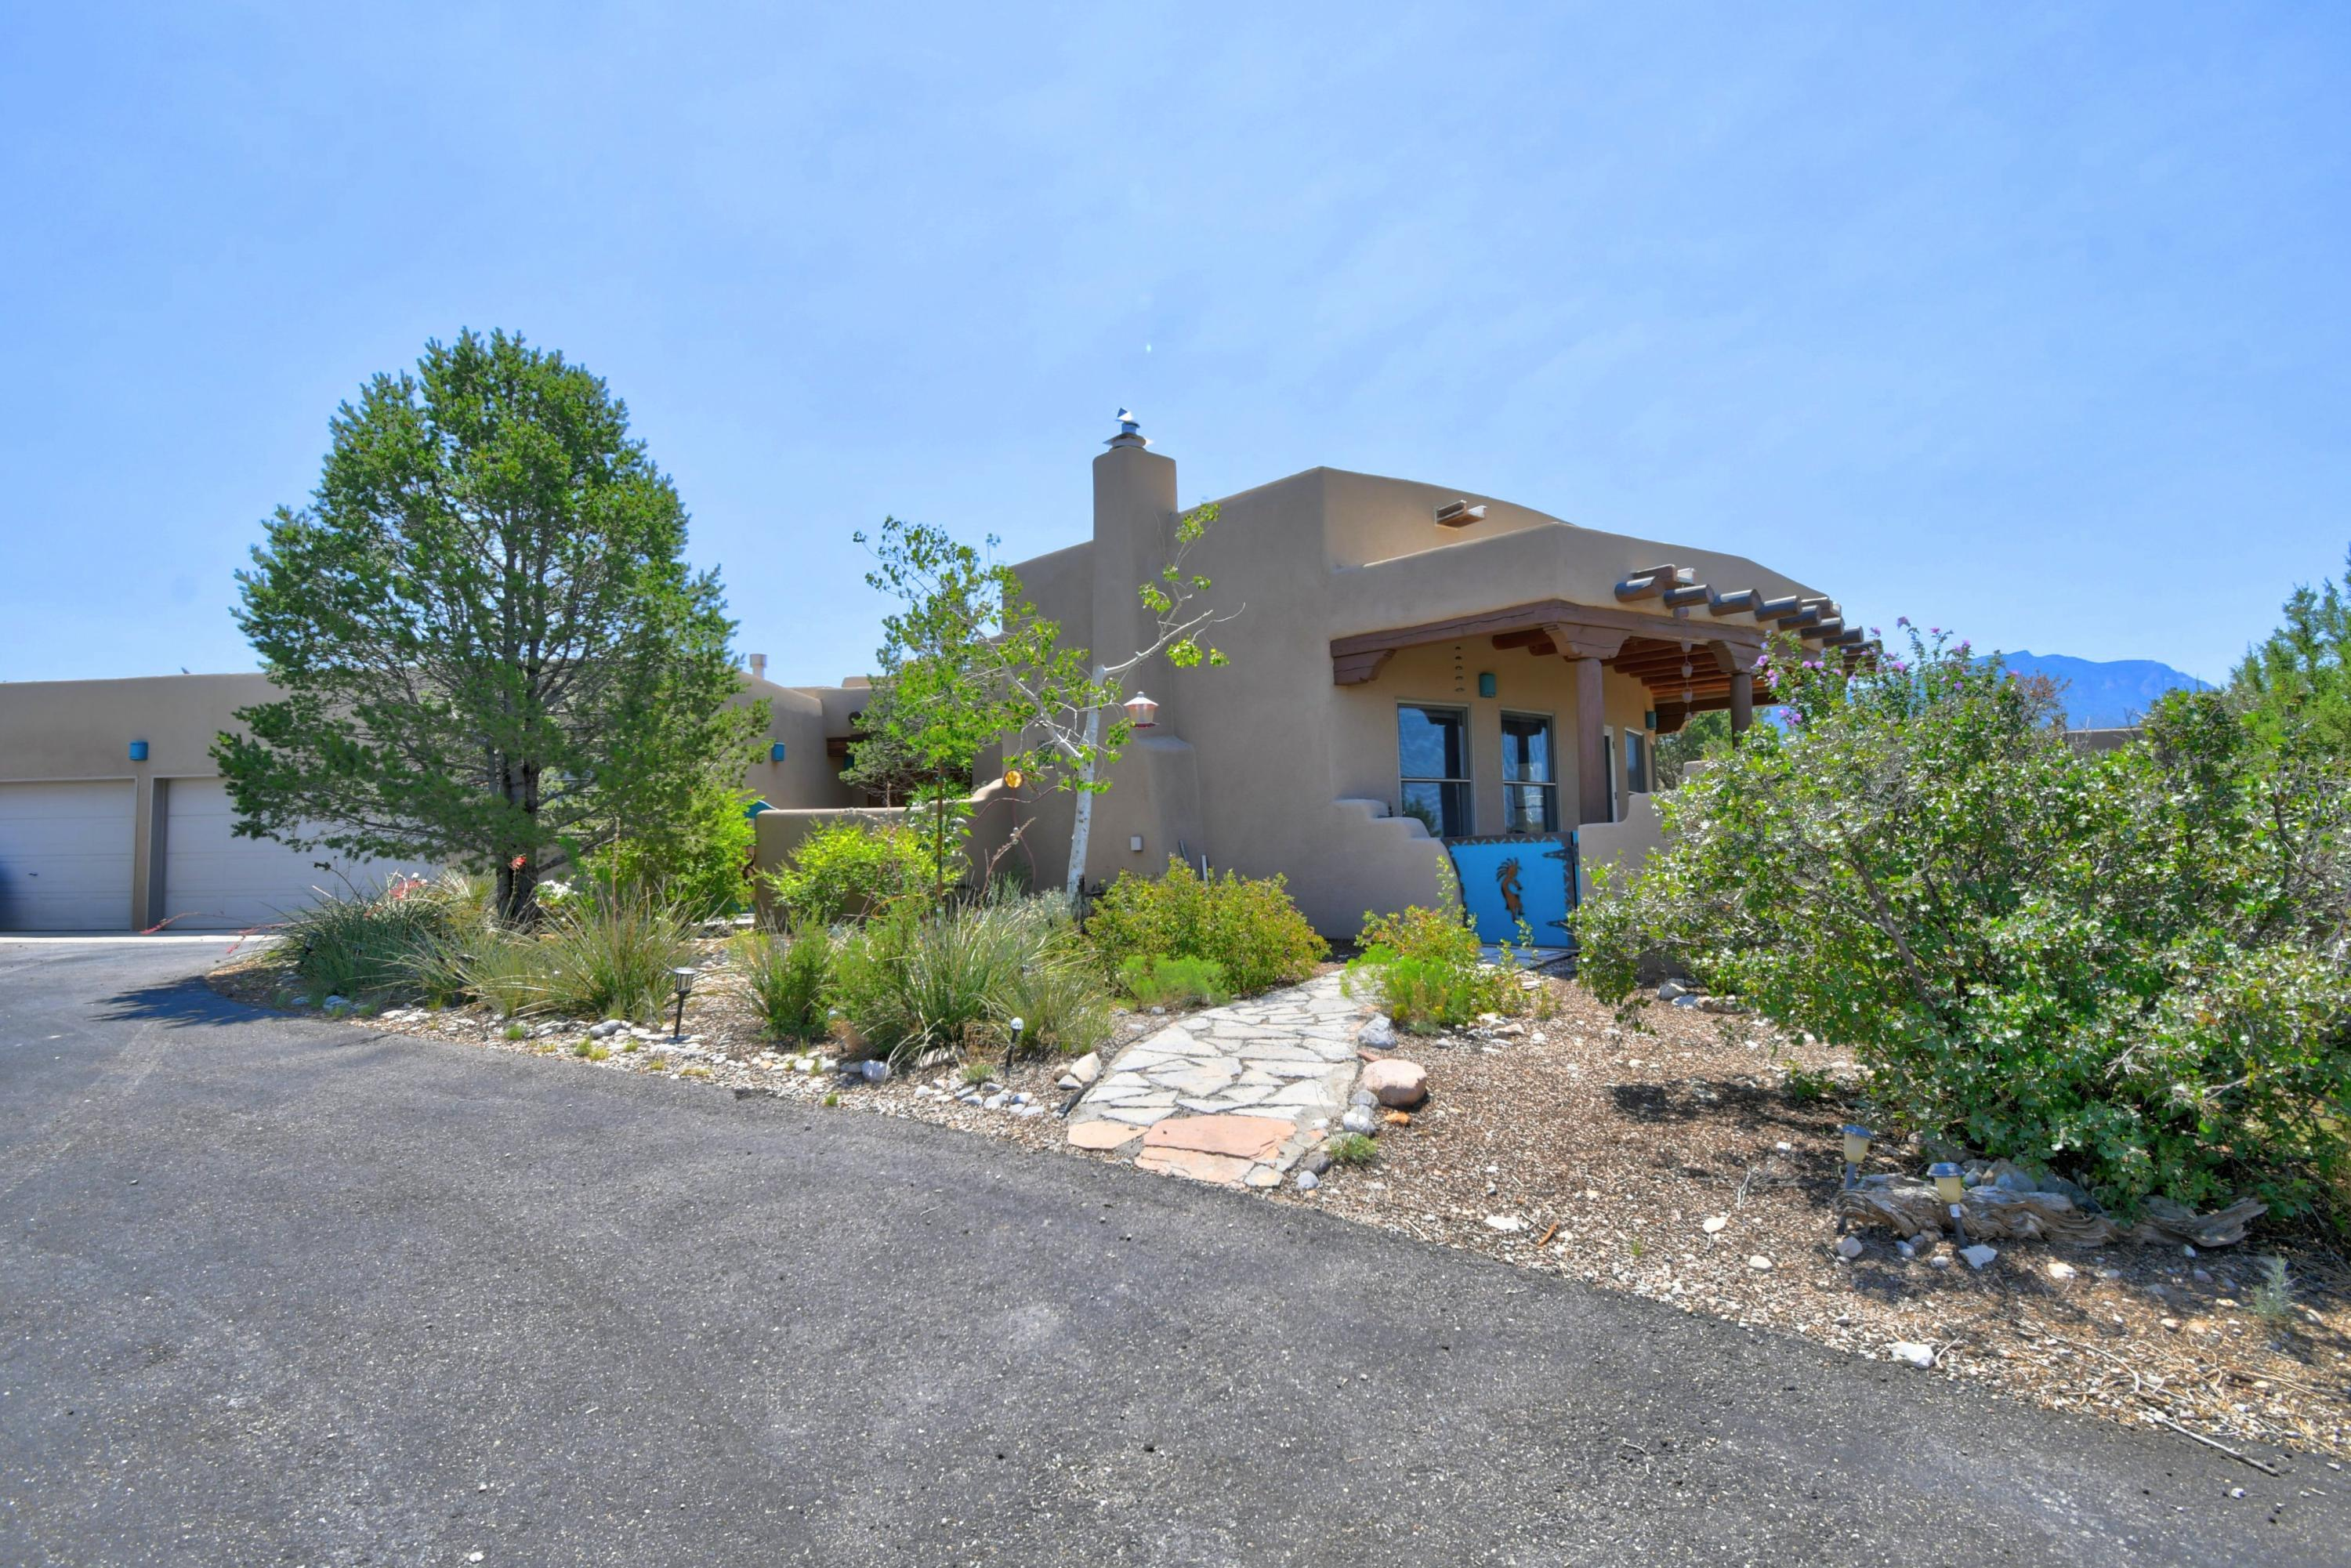 Two Master Suites make this stunning Santa Fe style home perfect for extended family. Incredible, expansive views for amazing sunsets!  Wonderful kitchen with dining room connected perfect for entertaining. Owners have made many great additions such as paving the driveway, newer roof 2018 and so much more! Placitas is known for its hiking and biking trails. Come see this beauty!